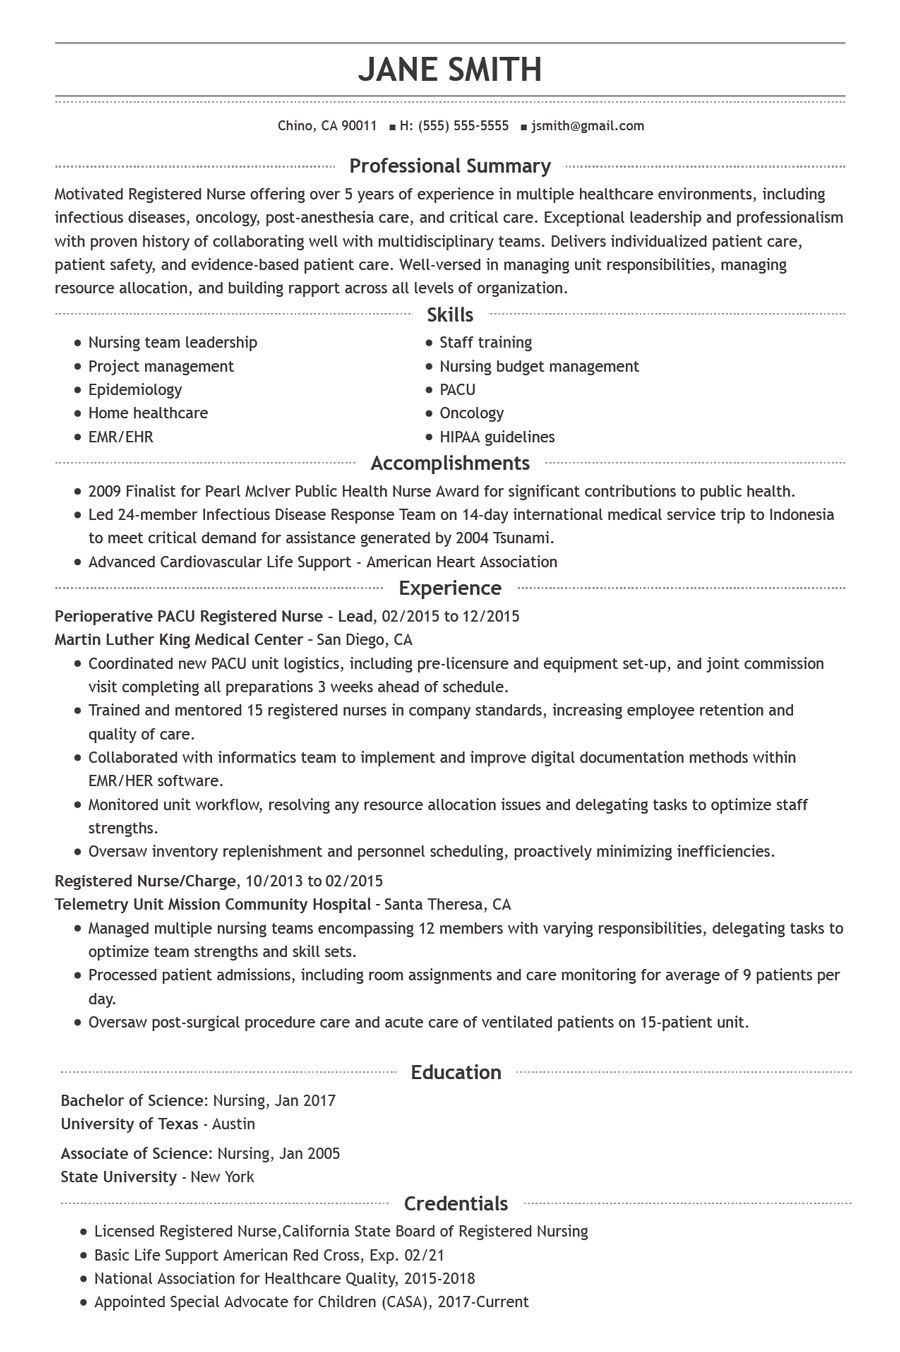 complete guide to nurse resume writing resumehelp functional for nurses chronological can Resume Functional Resume For Nurses